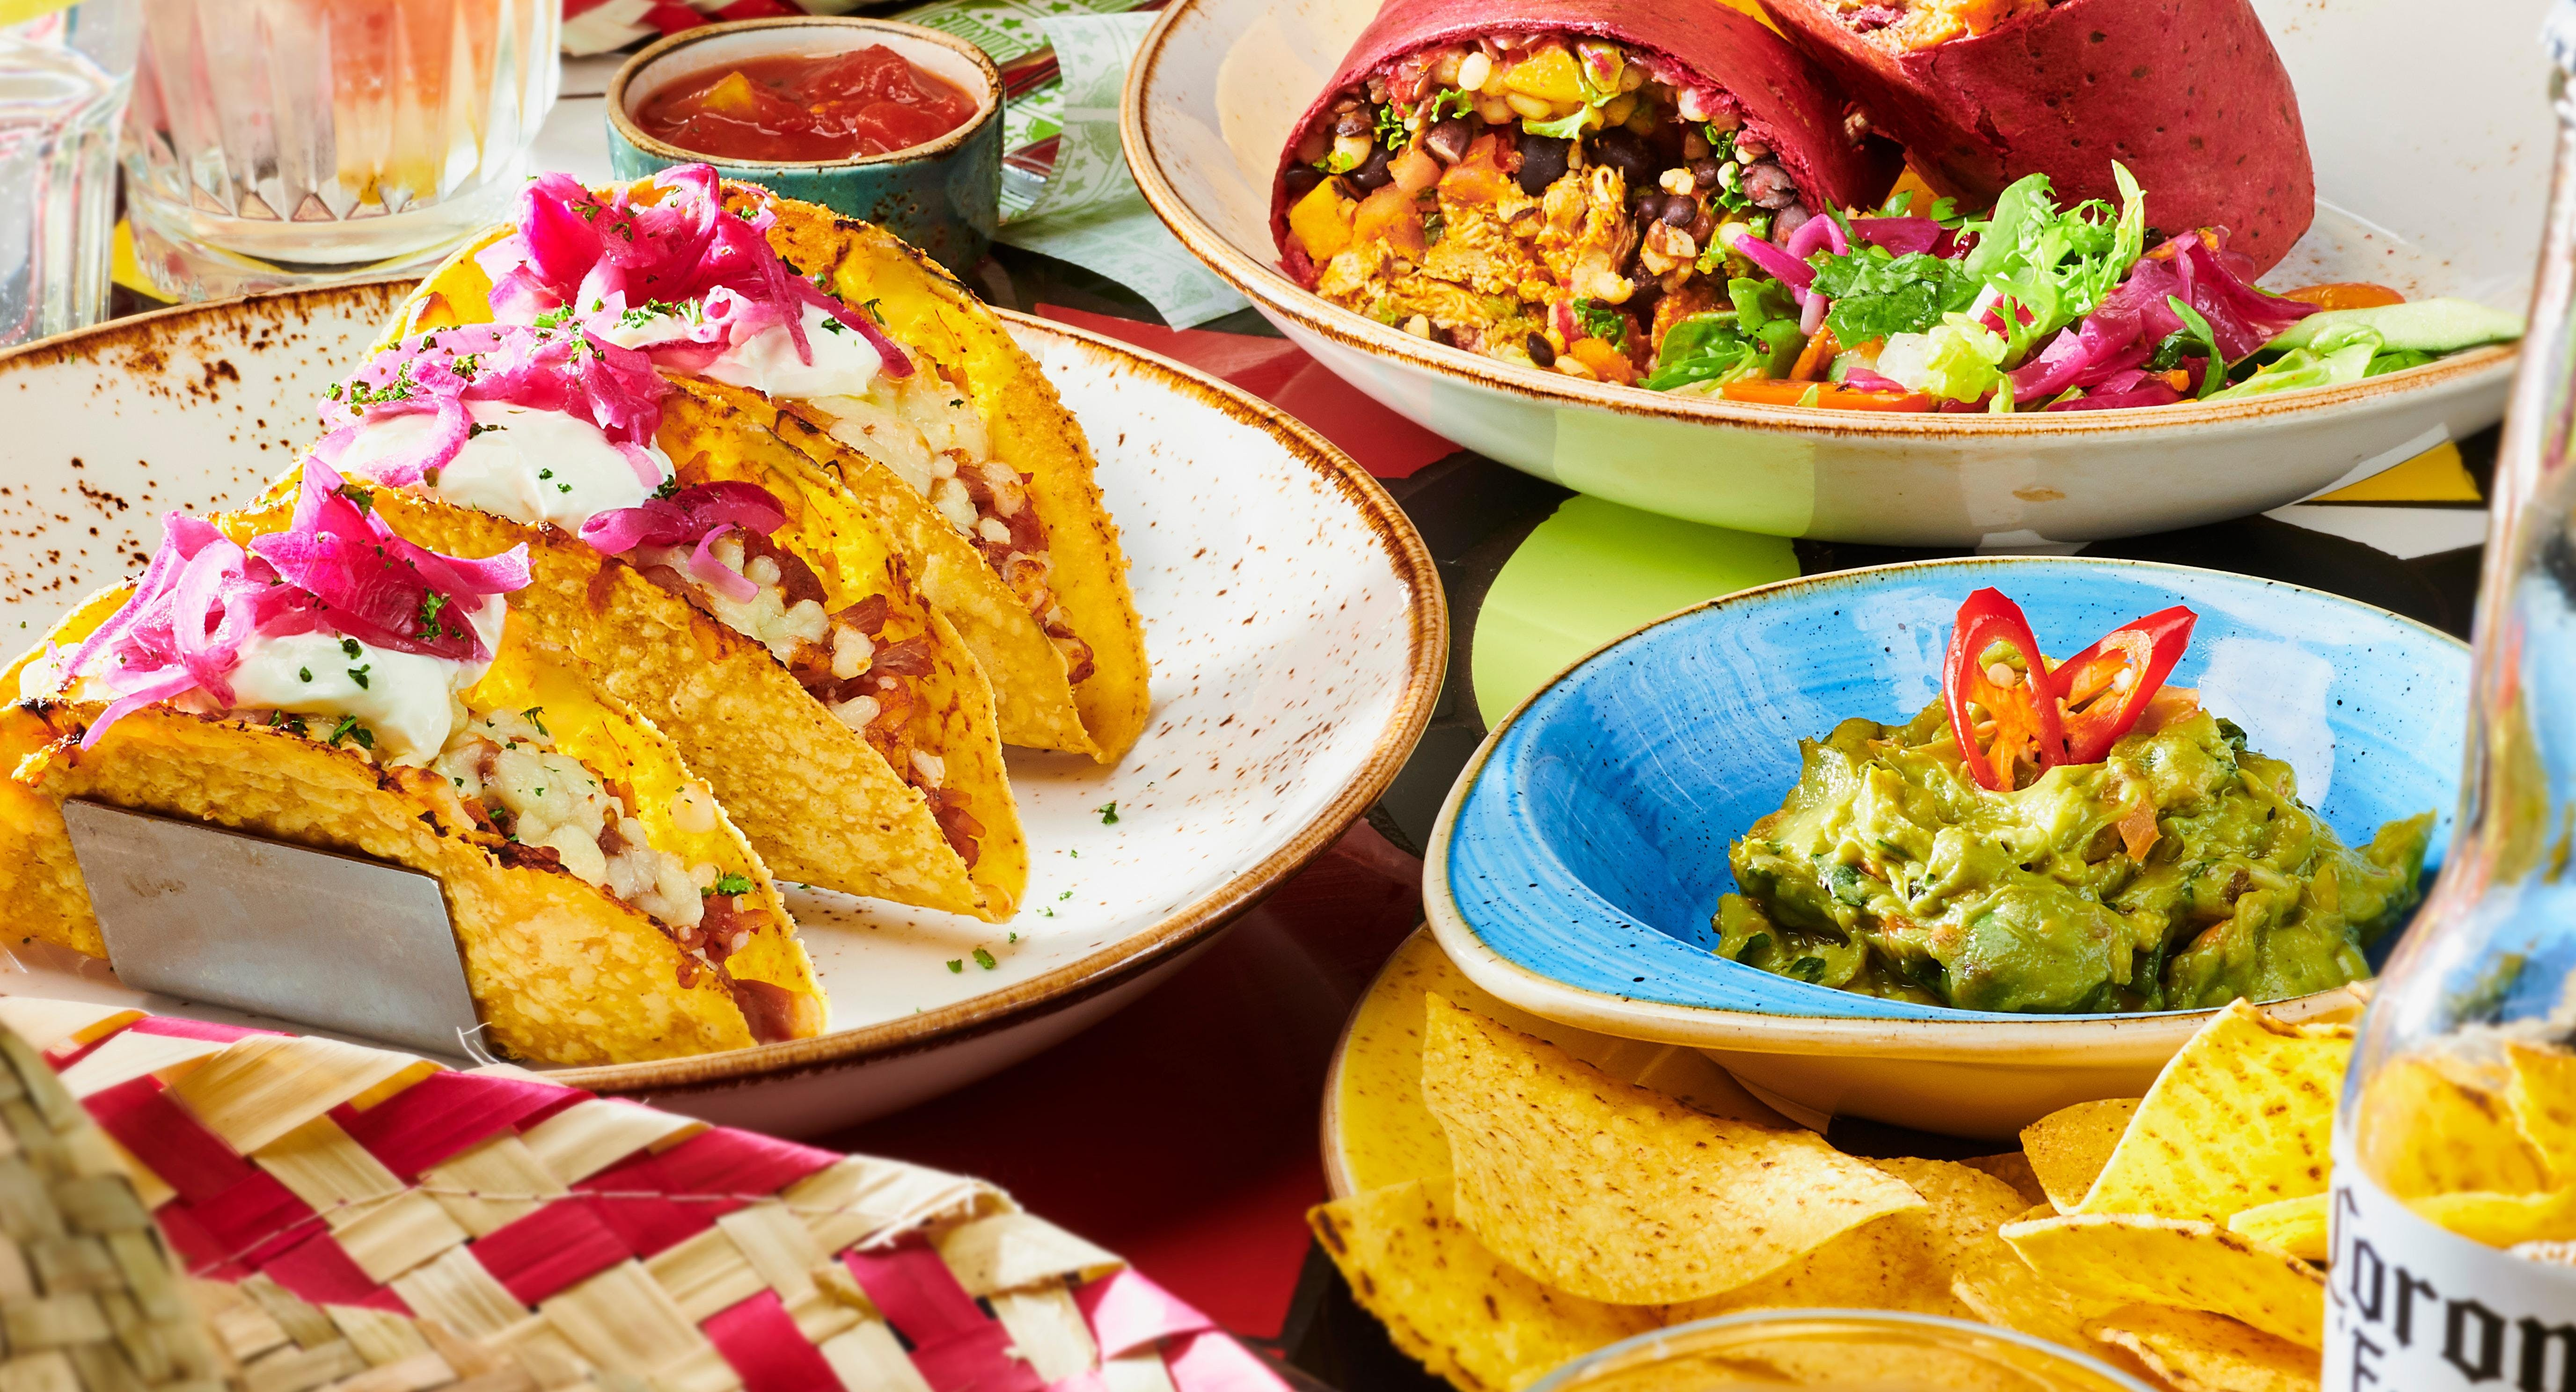 Chiquito Didsbury Manchester image 3